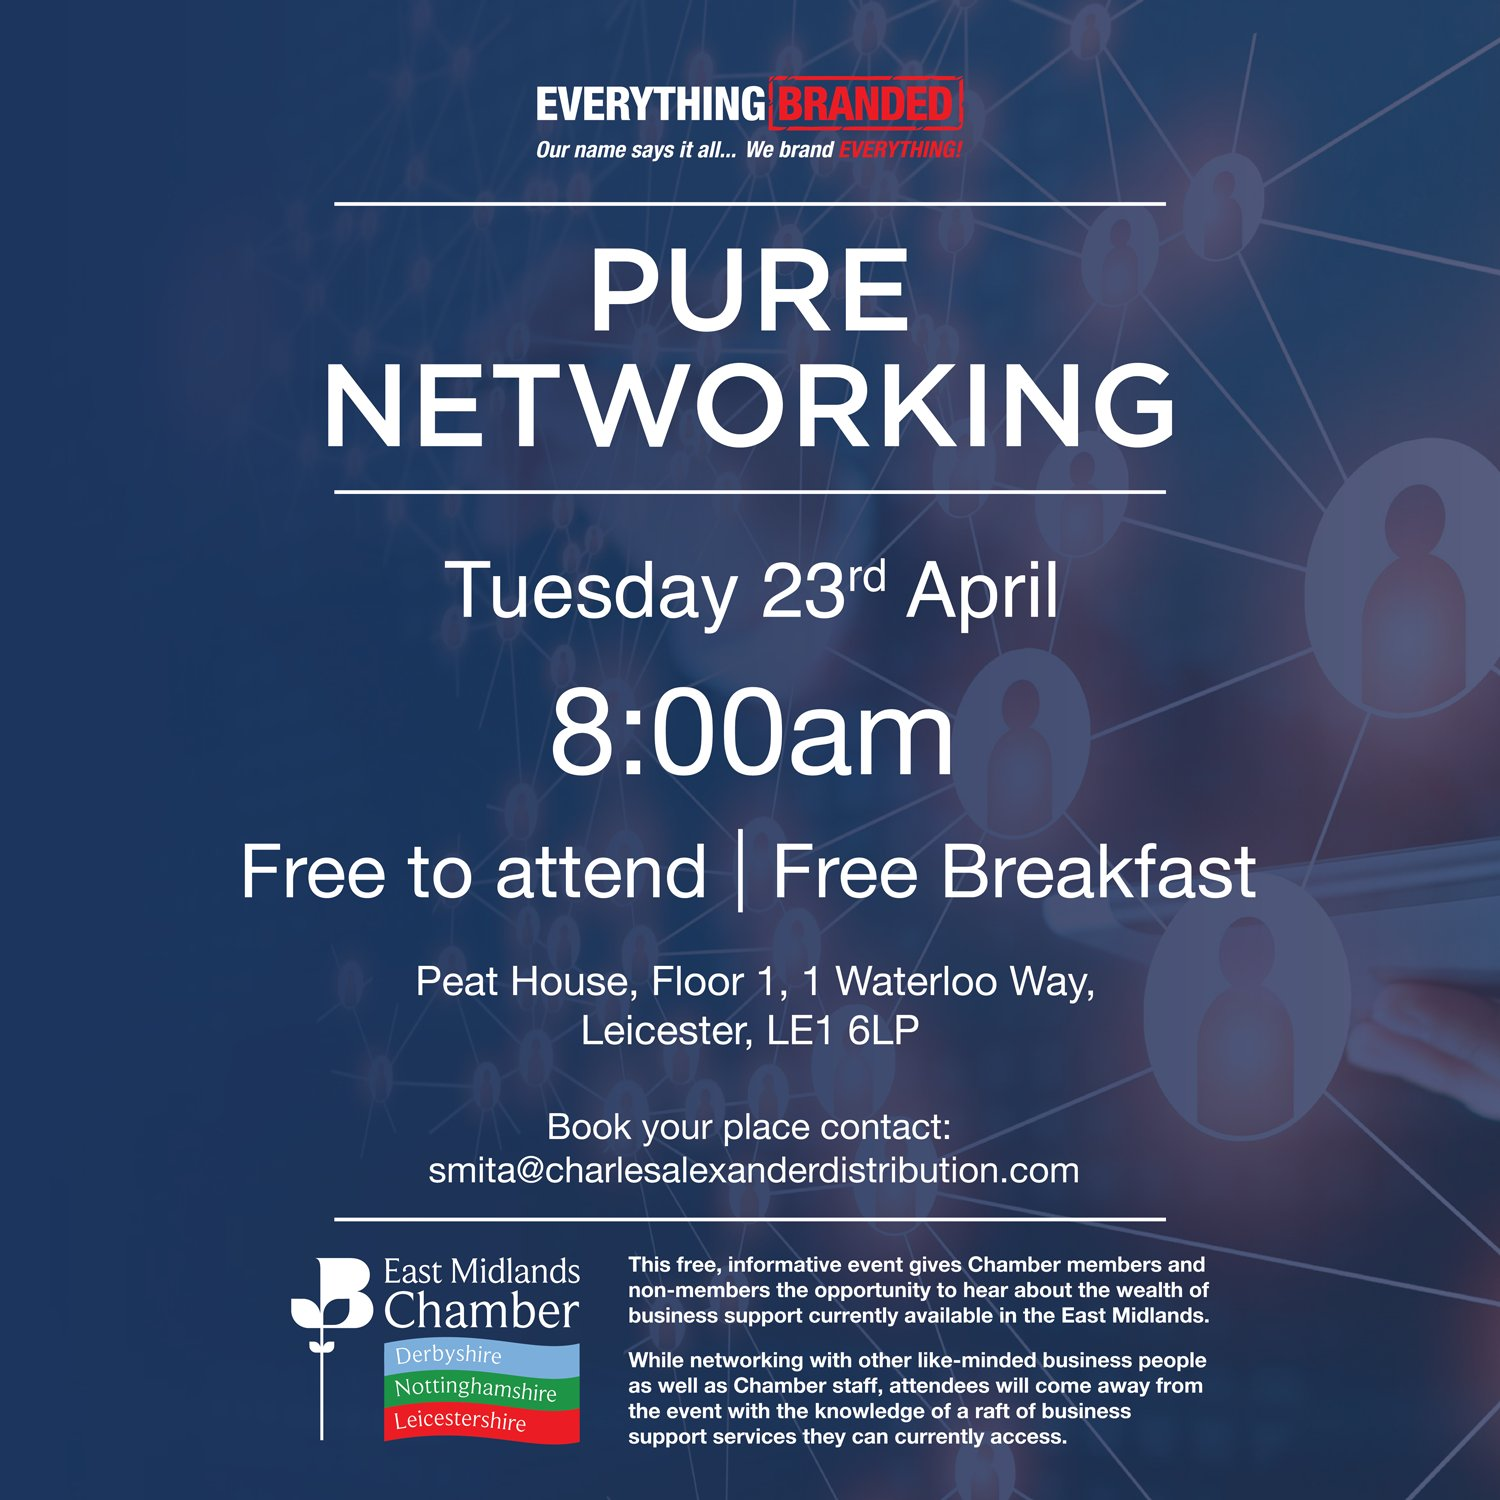 EverythingBranded - Pure Networking Morning